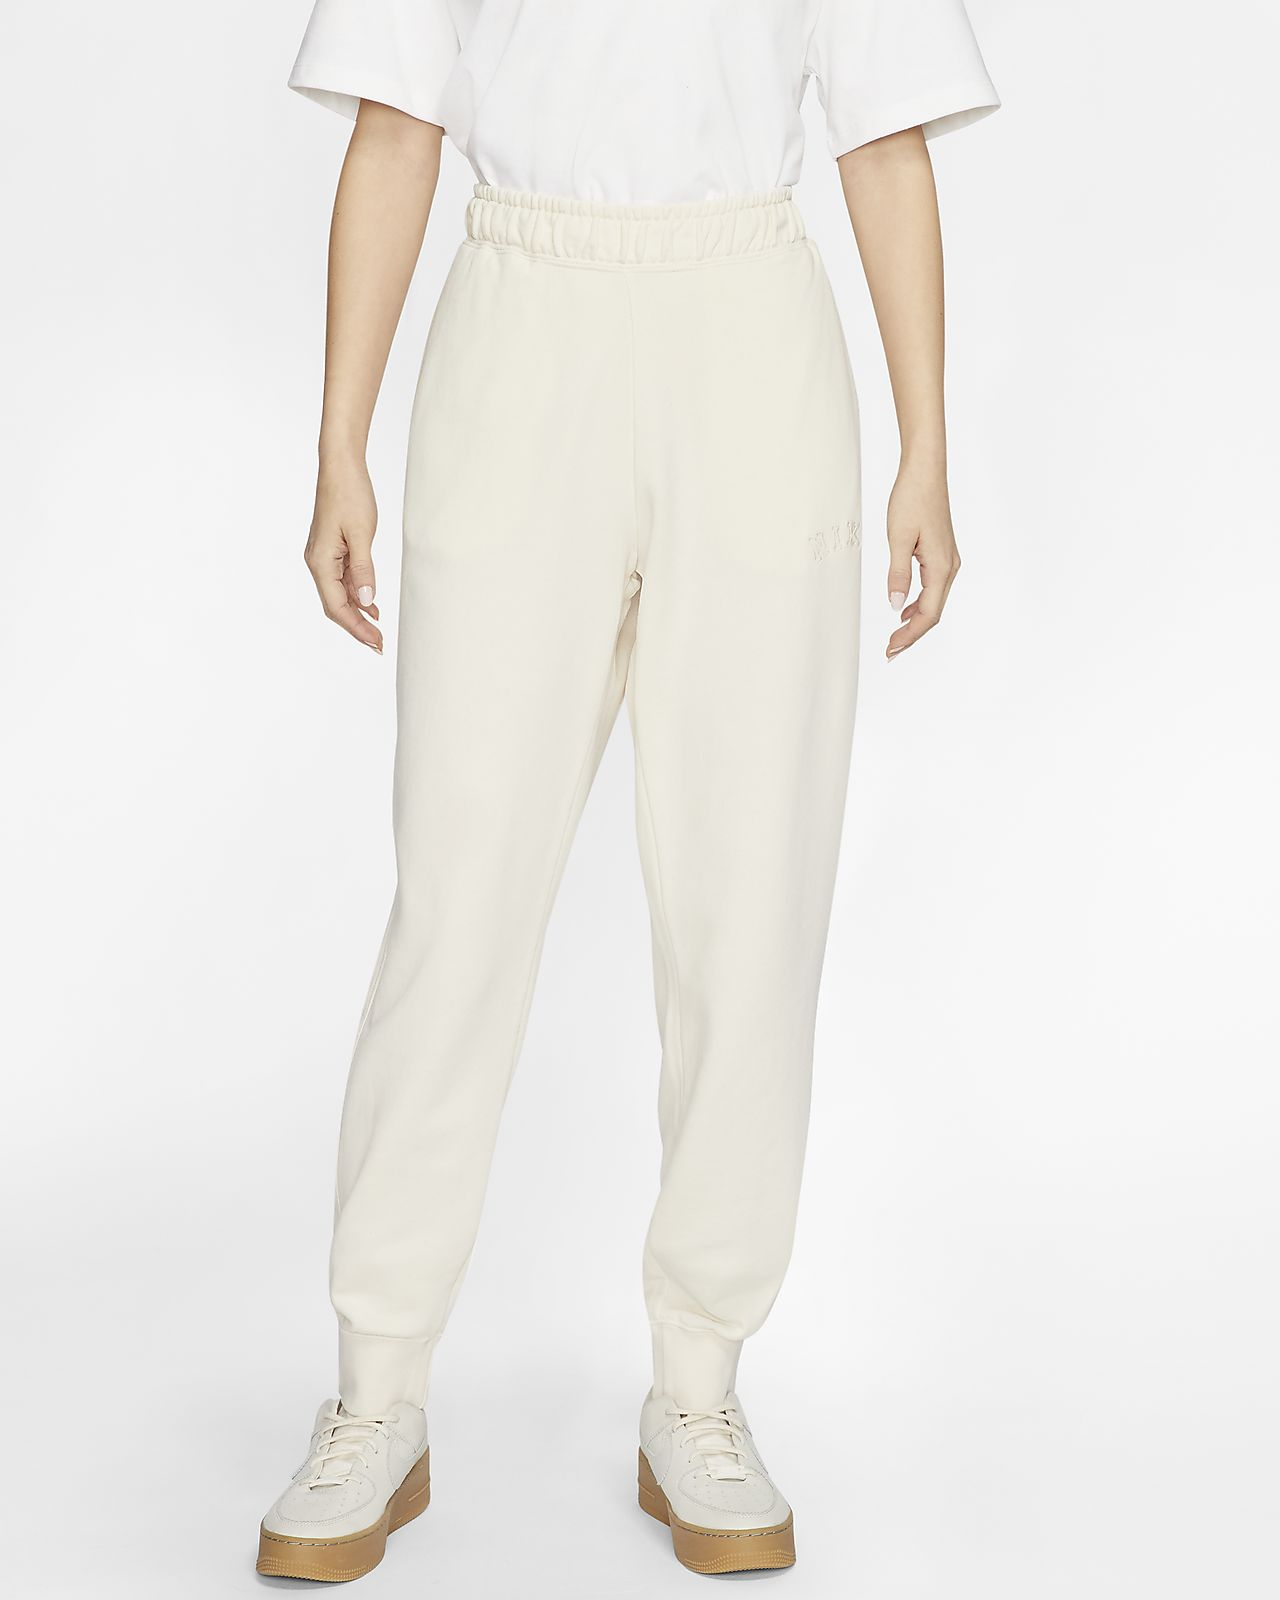 Pantalones de French Terry para mujer Nike Sportswear